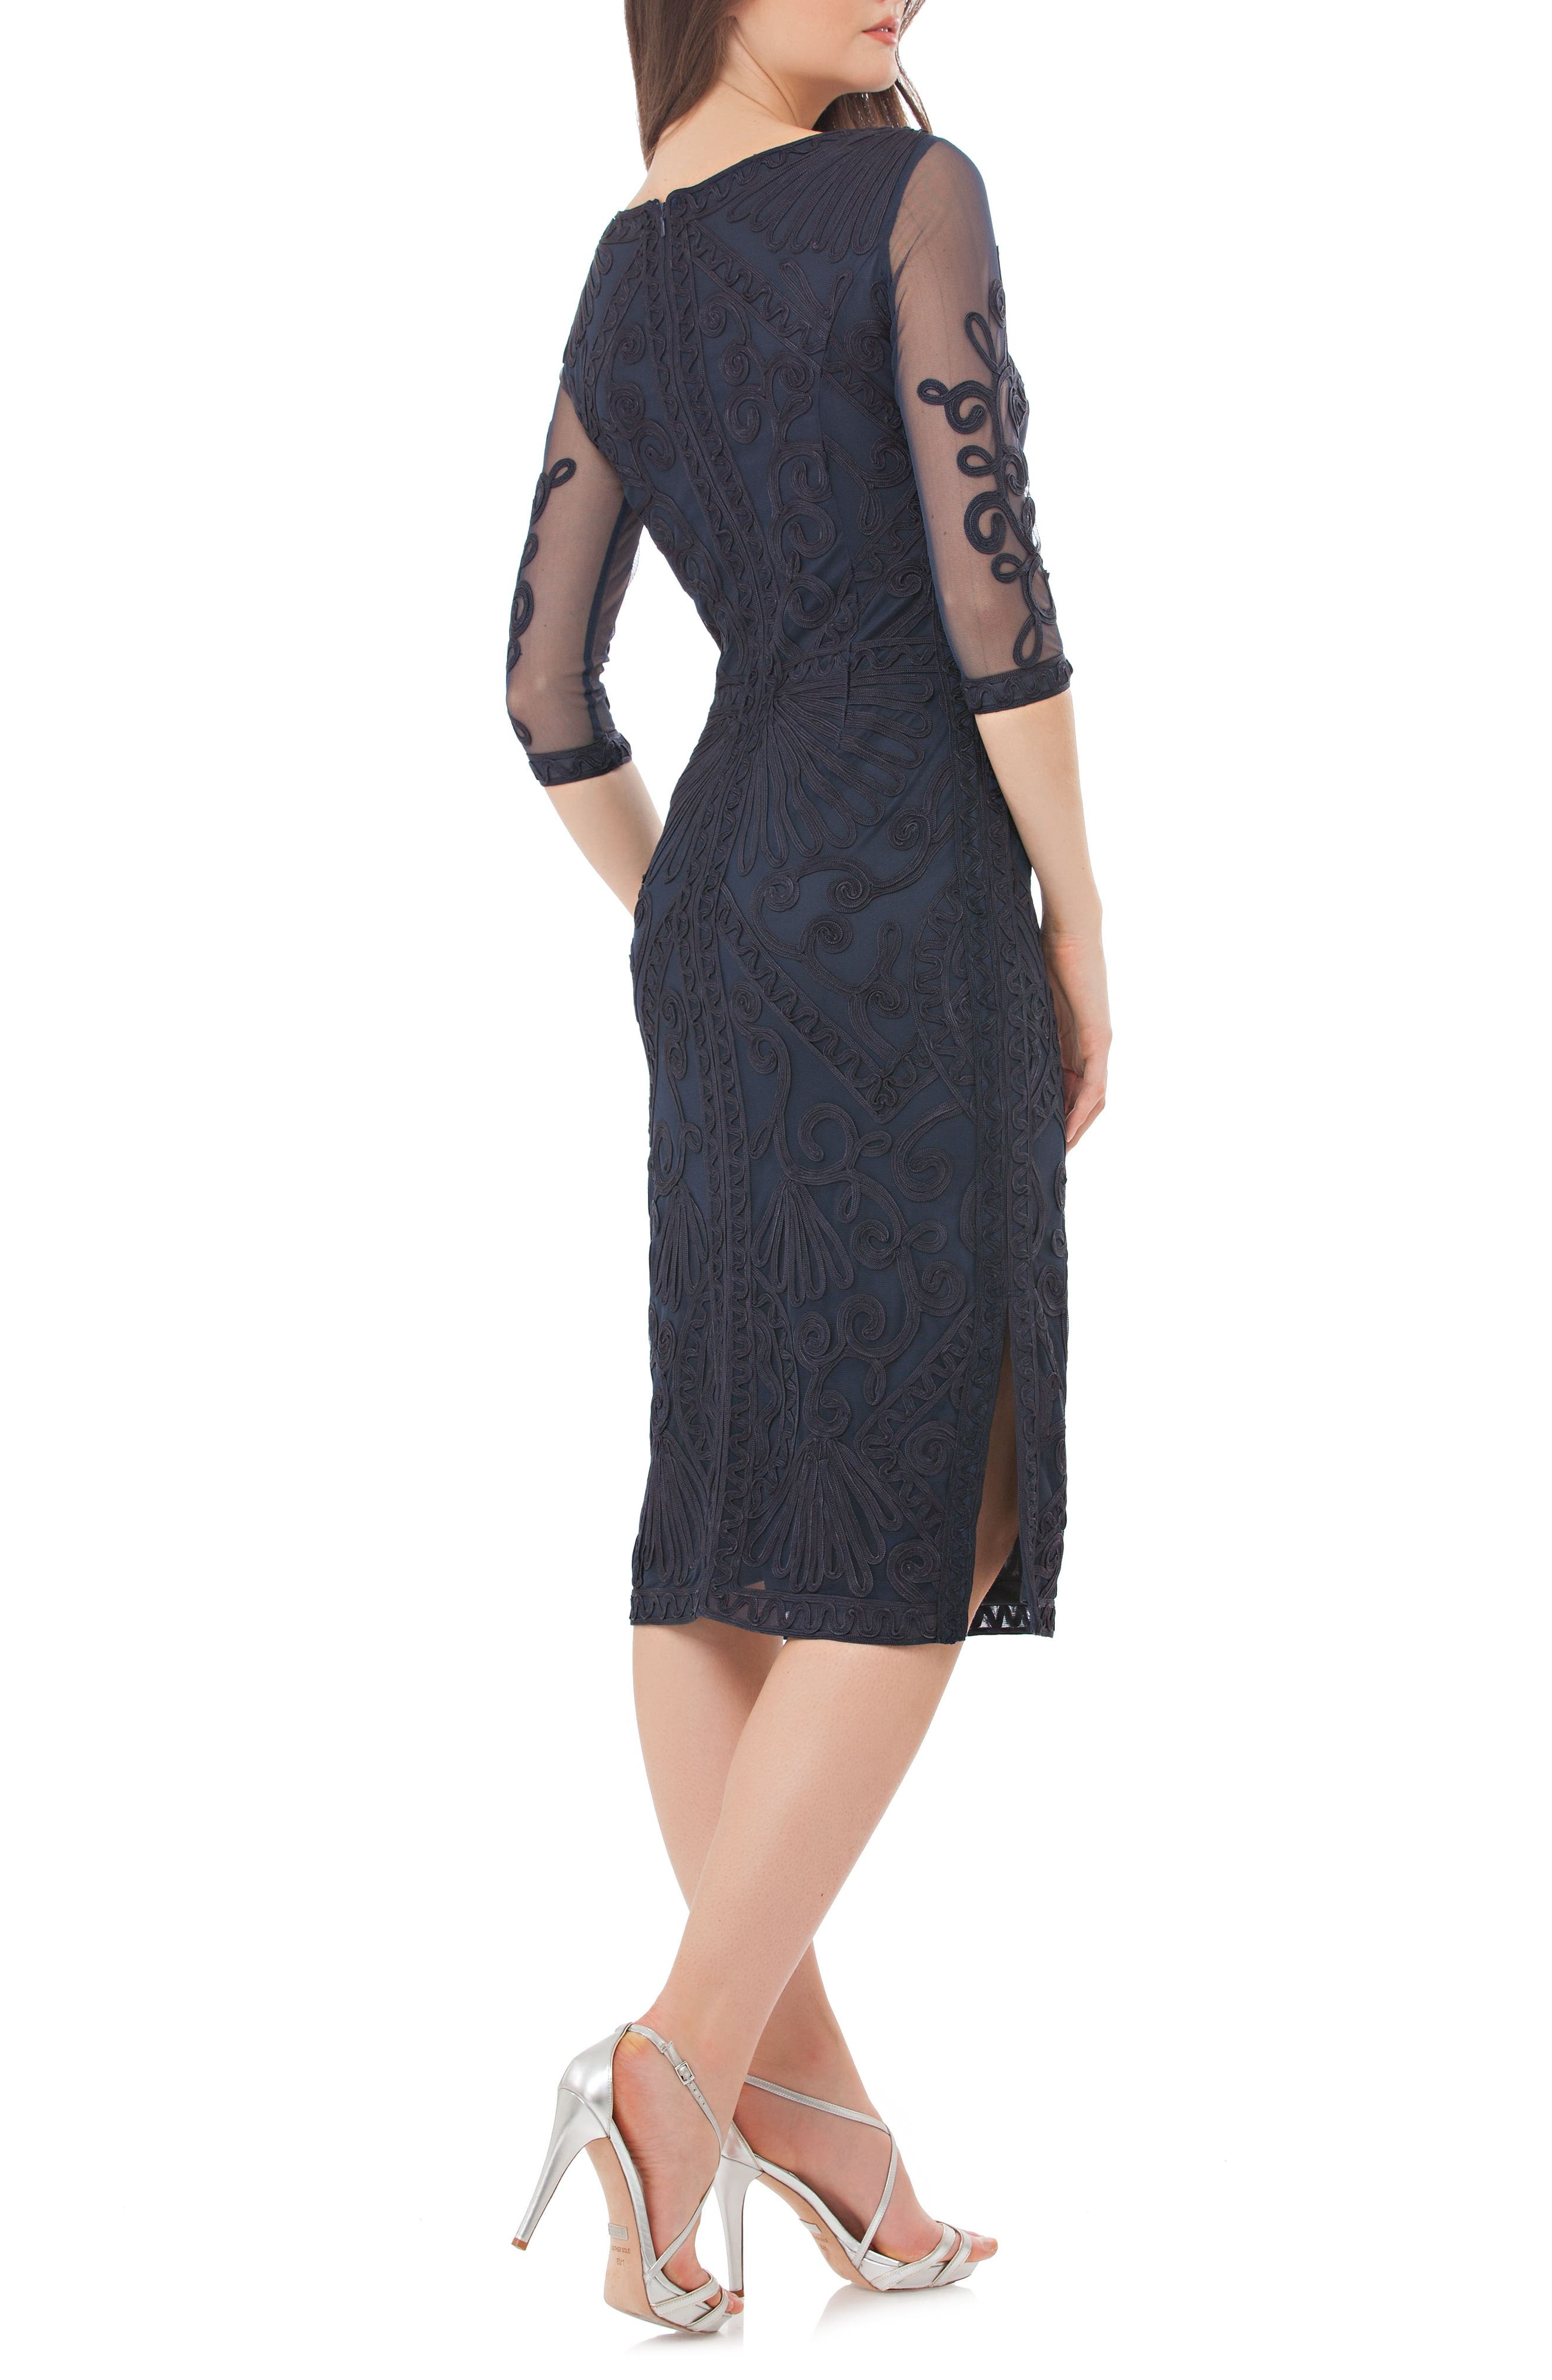 JS COLLECTIONS, Sheer Sleeve Soutache Sheath Dress, Alternate thumbnail 2, color, NAVY